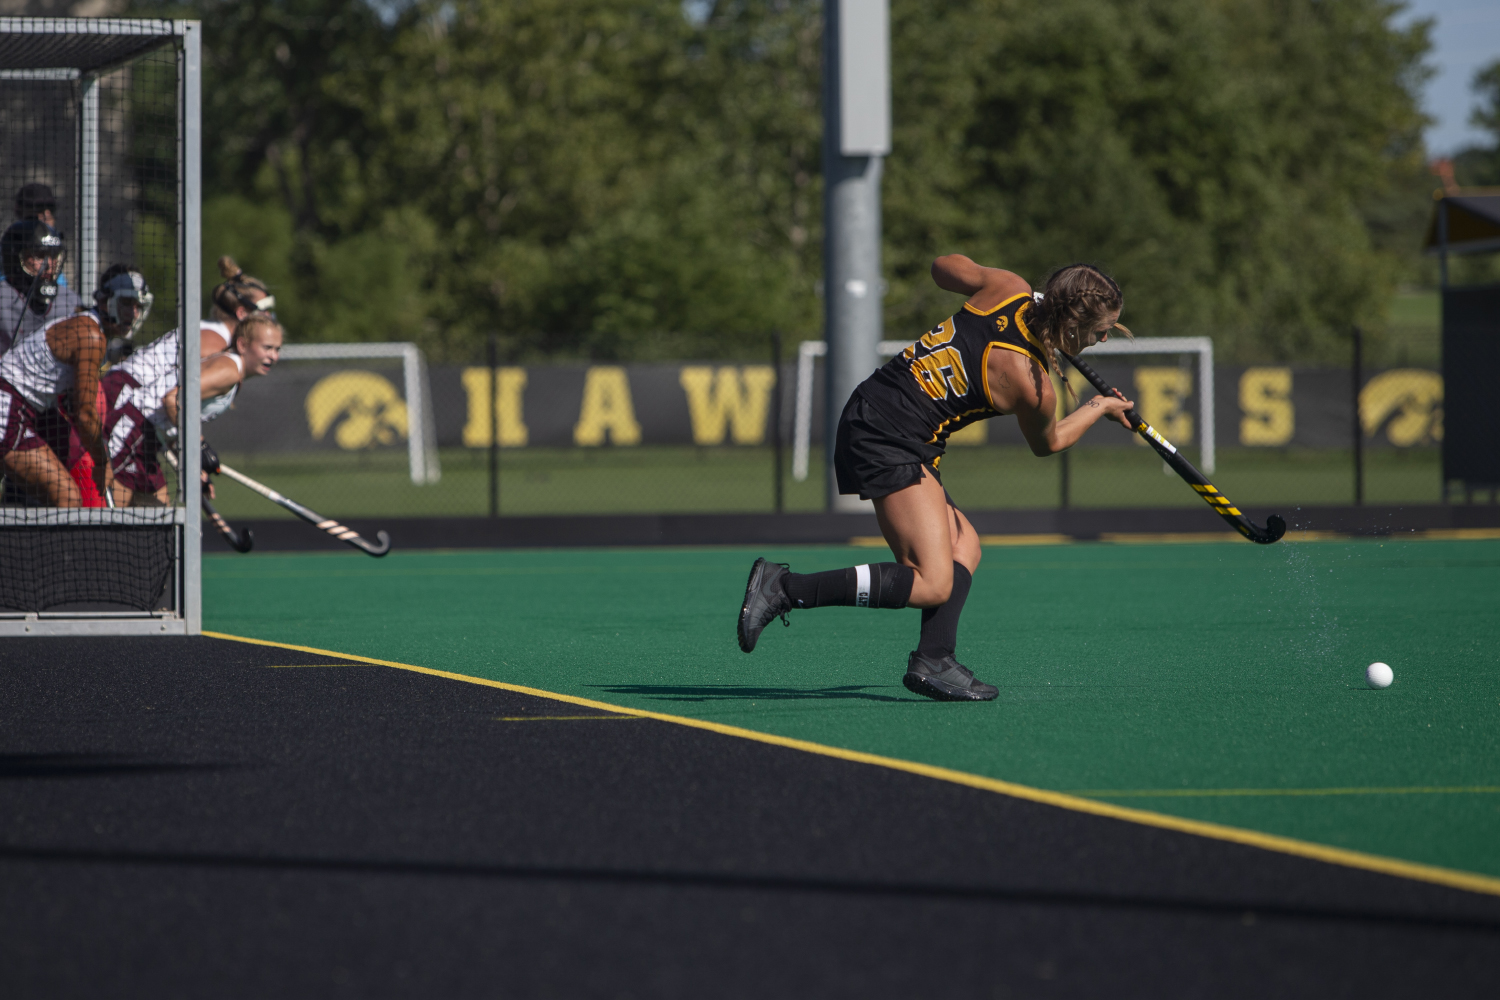 Iowa+forward+Maddy+Murphy+hits+a+corner+penalty+shot+during+a+field+hockey+game+between+Iowa+and+Central+Michigan+at+Grant+Field+on+Friday%2C+September+6%2C+2019.+The+Hawkeyes+defeated+the+Chippewas%2C+11-0.